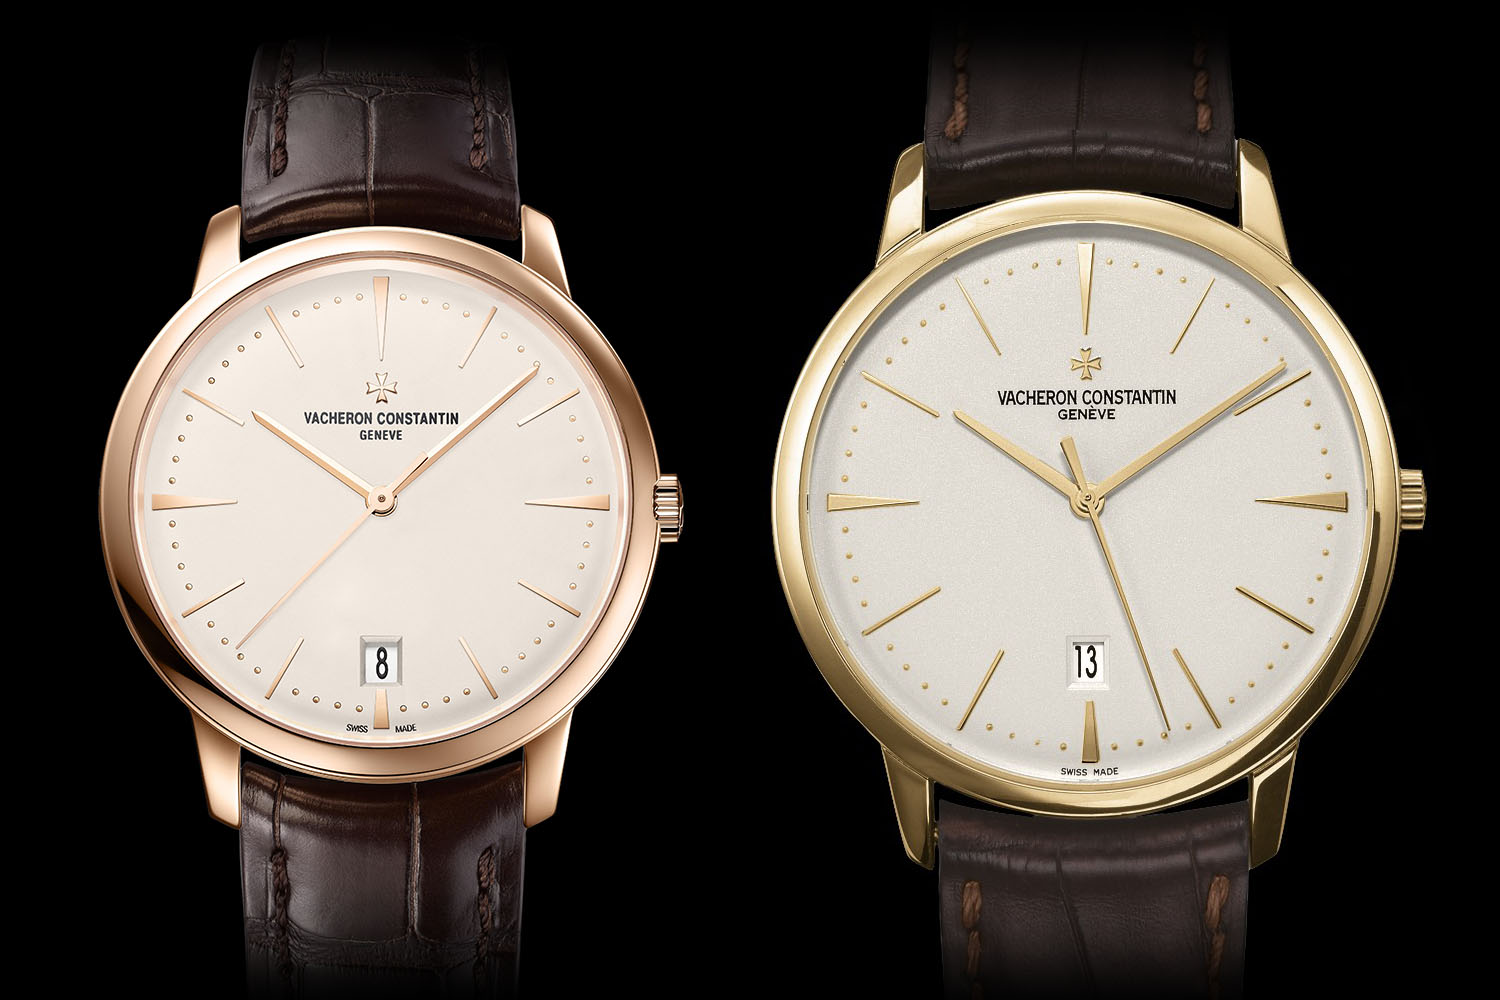 Introducing – Vacheron Constantin Patrimony Small Model 36mm – Restrained Elegance for Him and Her